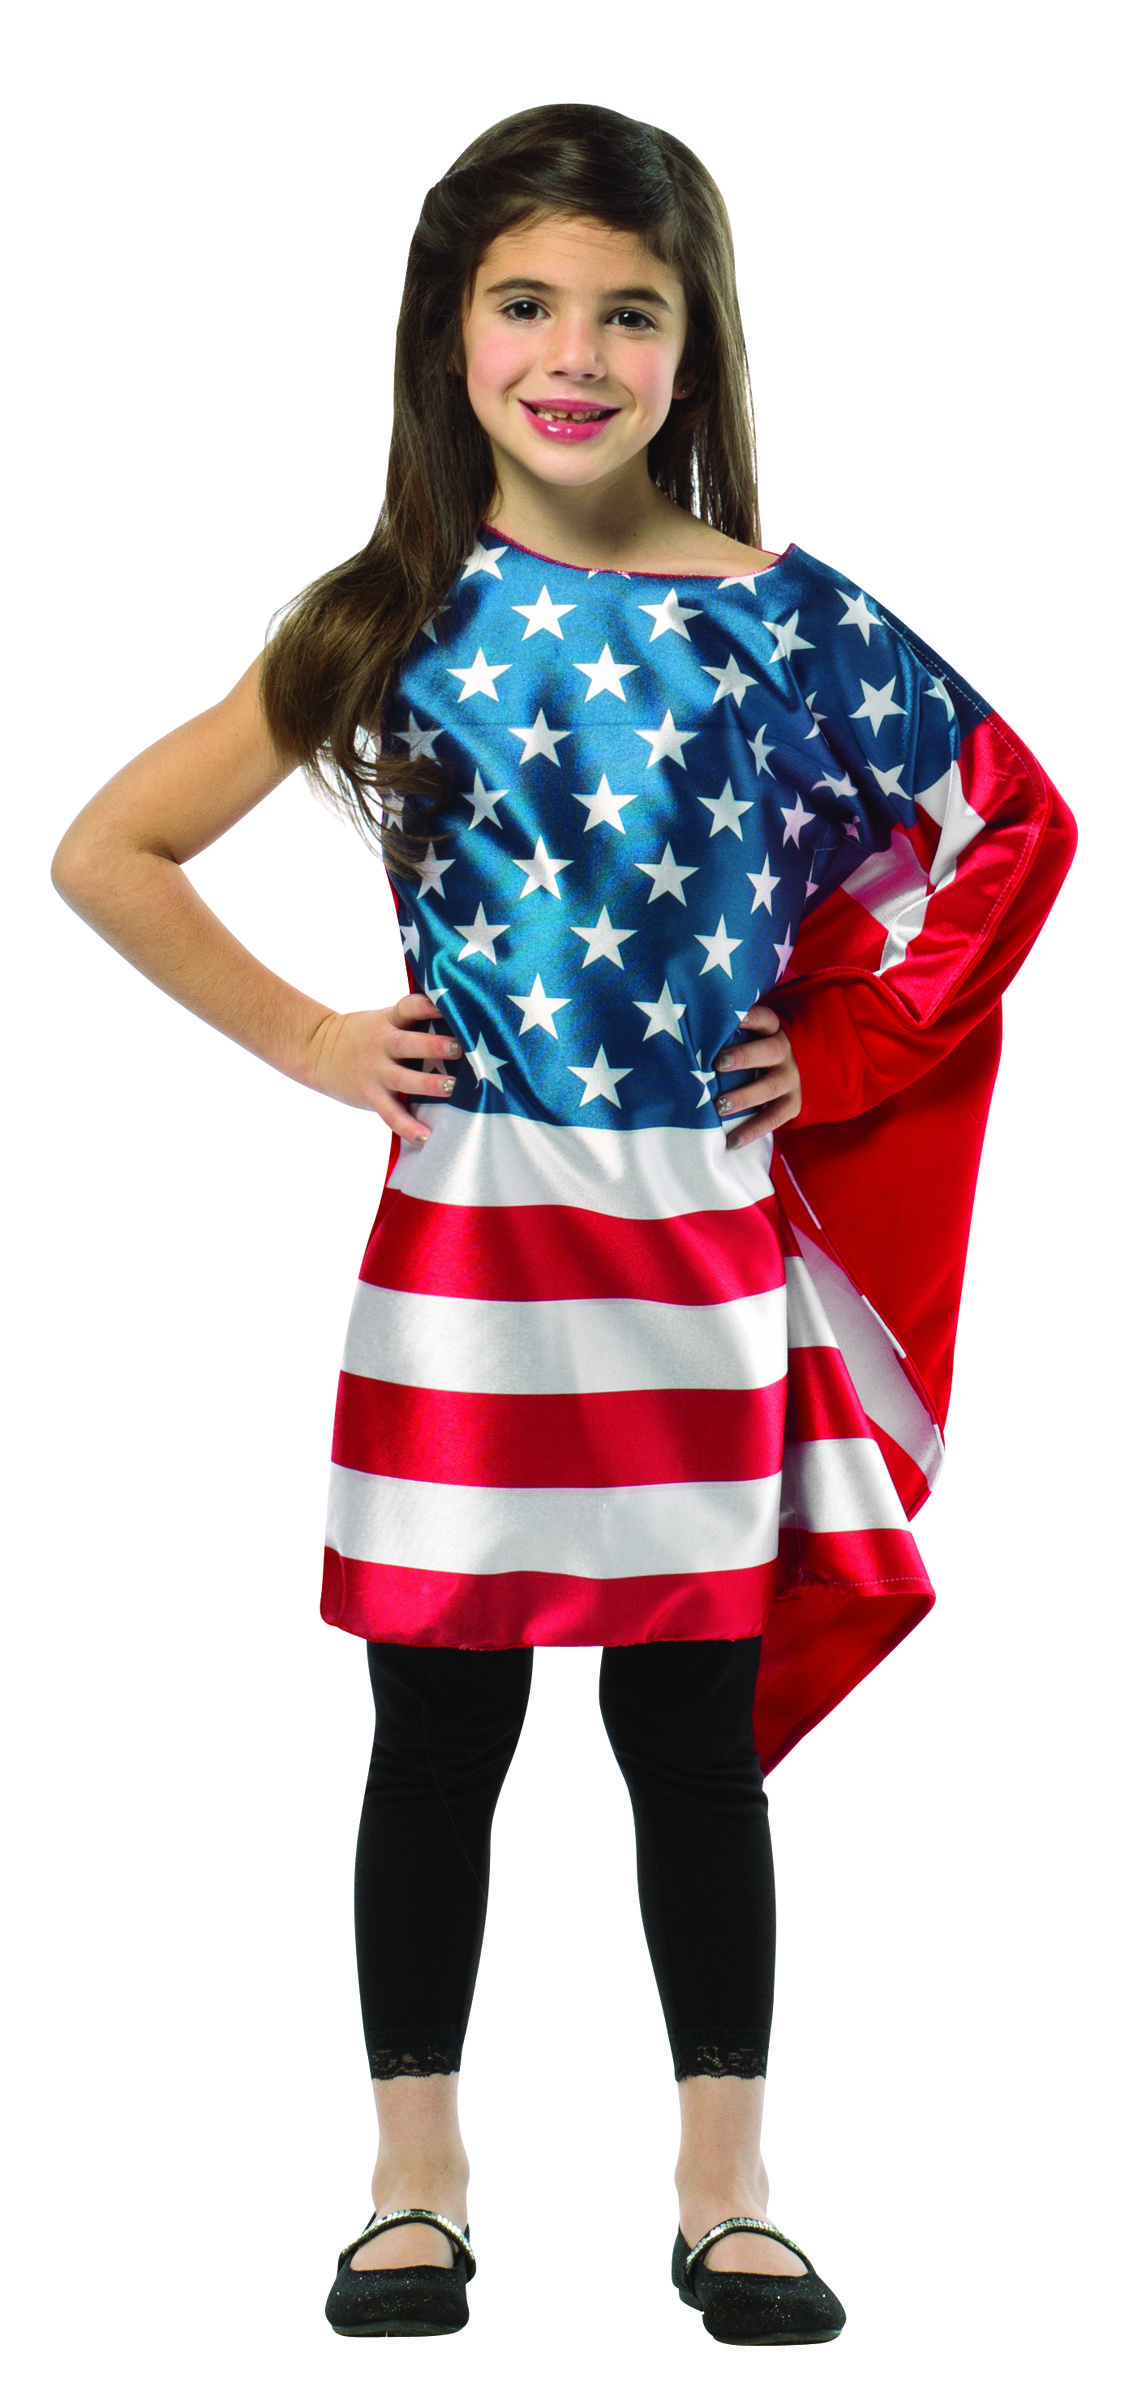 f04968905105 #1942-46 USA Flag Dress - Everyone will pledge allegiance to you in this  American Flag Dress! Show your loyalty to the red, white, and blue!